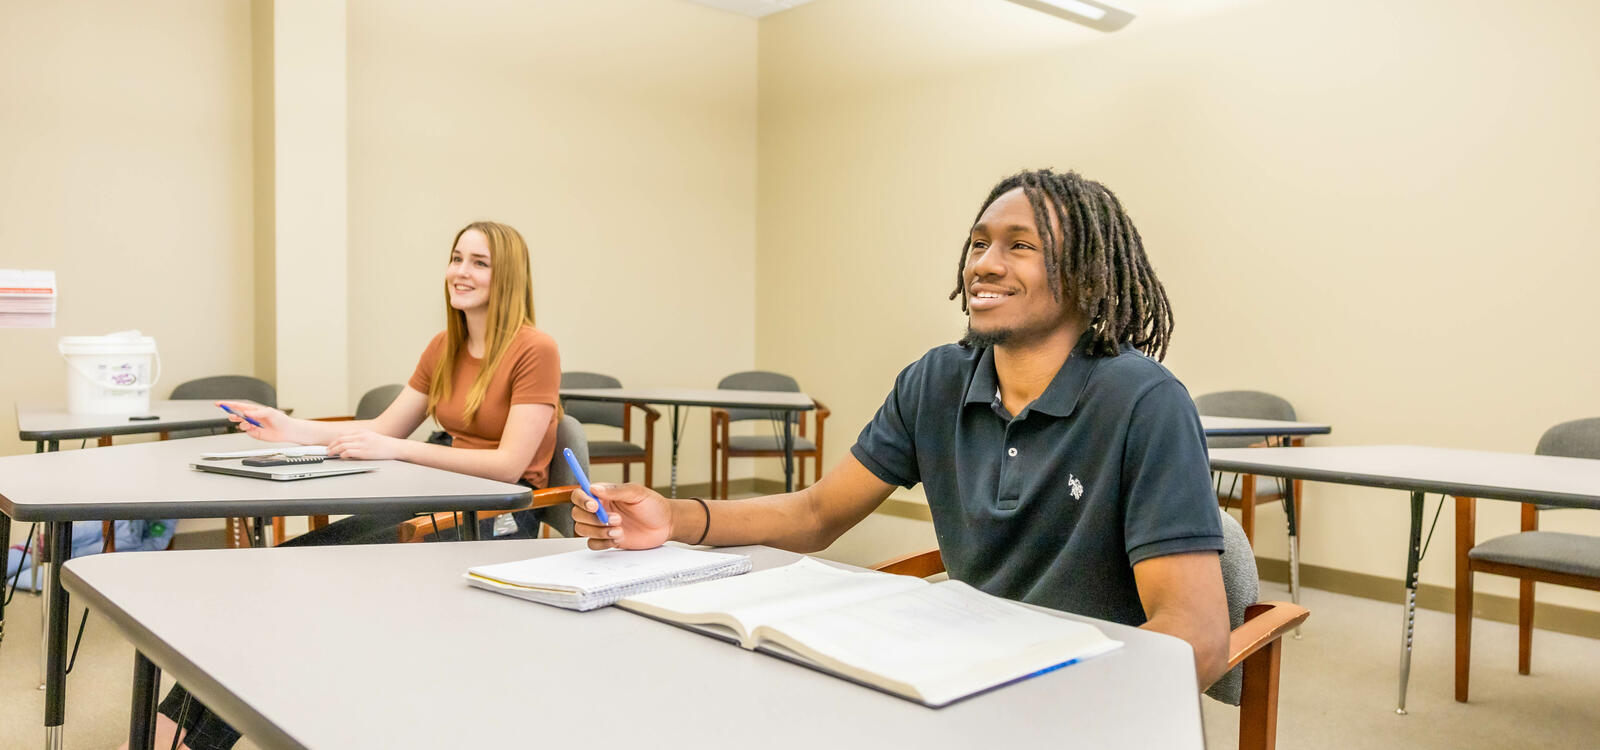 Two students sitting at desks smiling and listening attentively to the lecture.